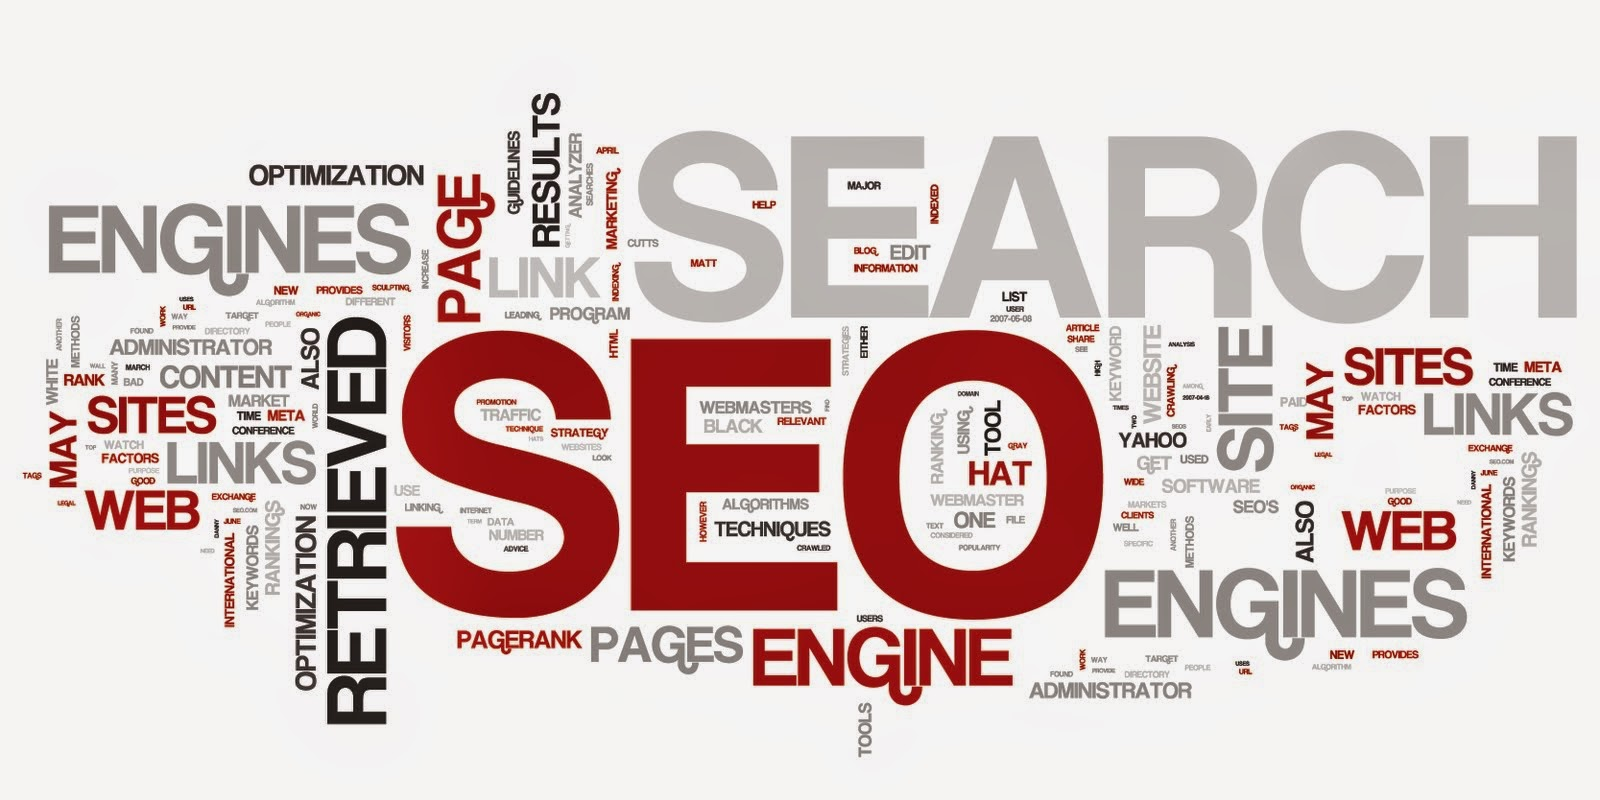 SEO is really basic matter for your Blog too Website too SEO bring importance Complete Blogger SEO (Search Engine Optimization) Training Video Tutorials inwards Urdu/Hindi